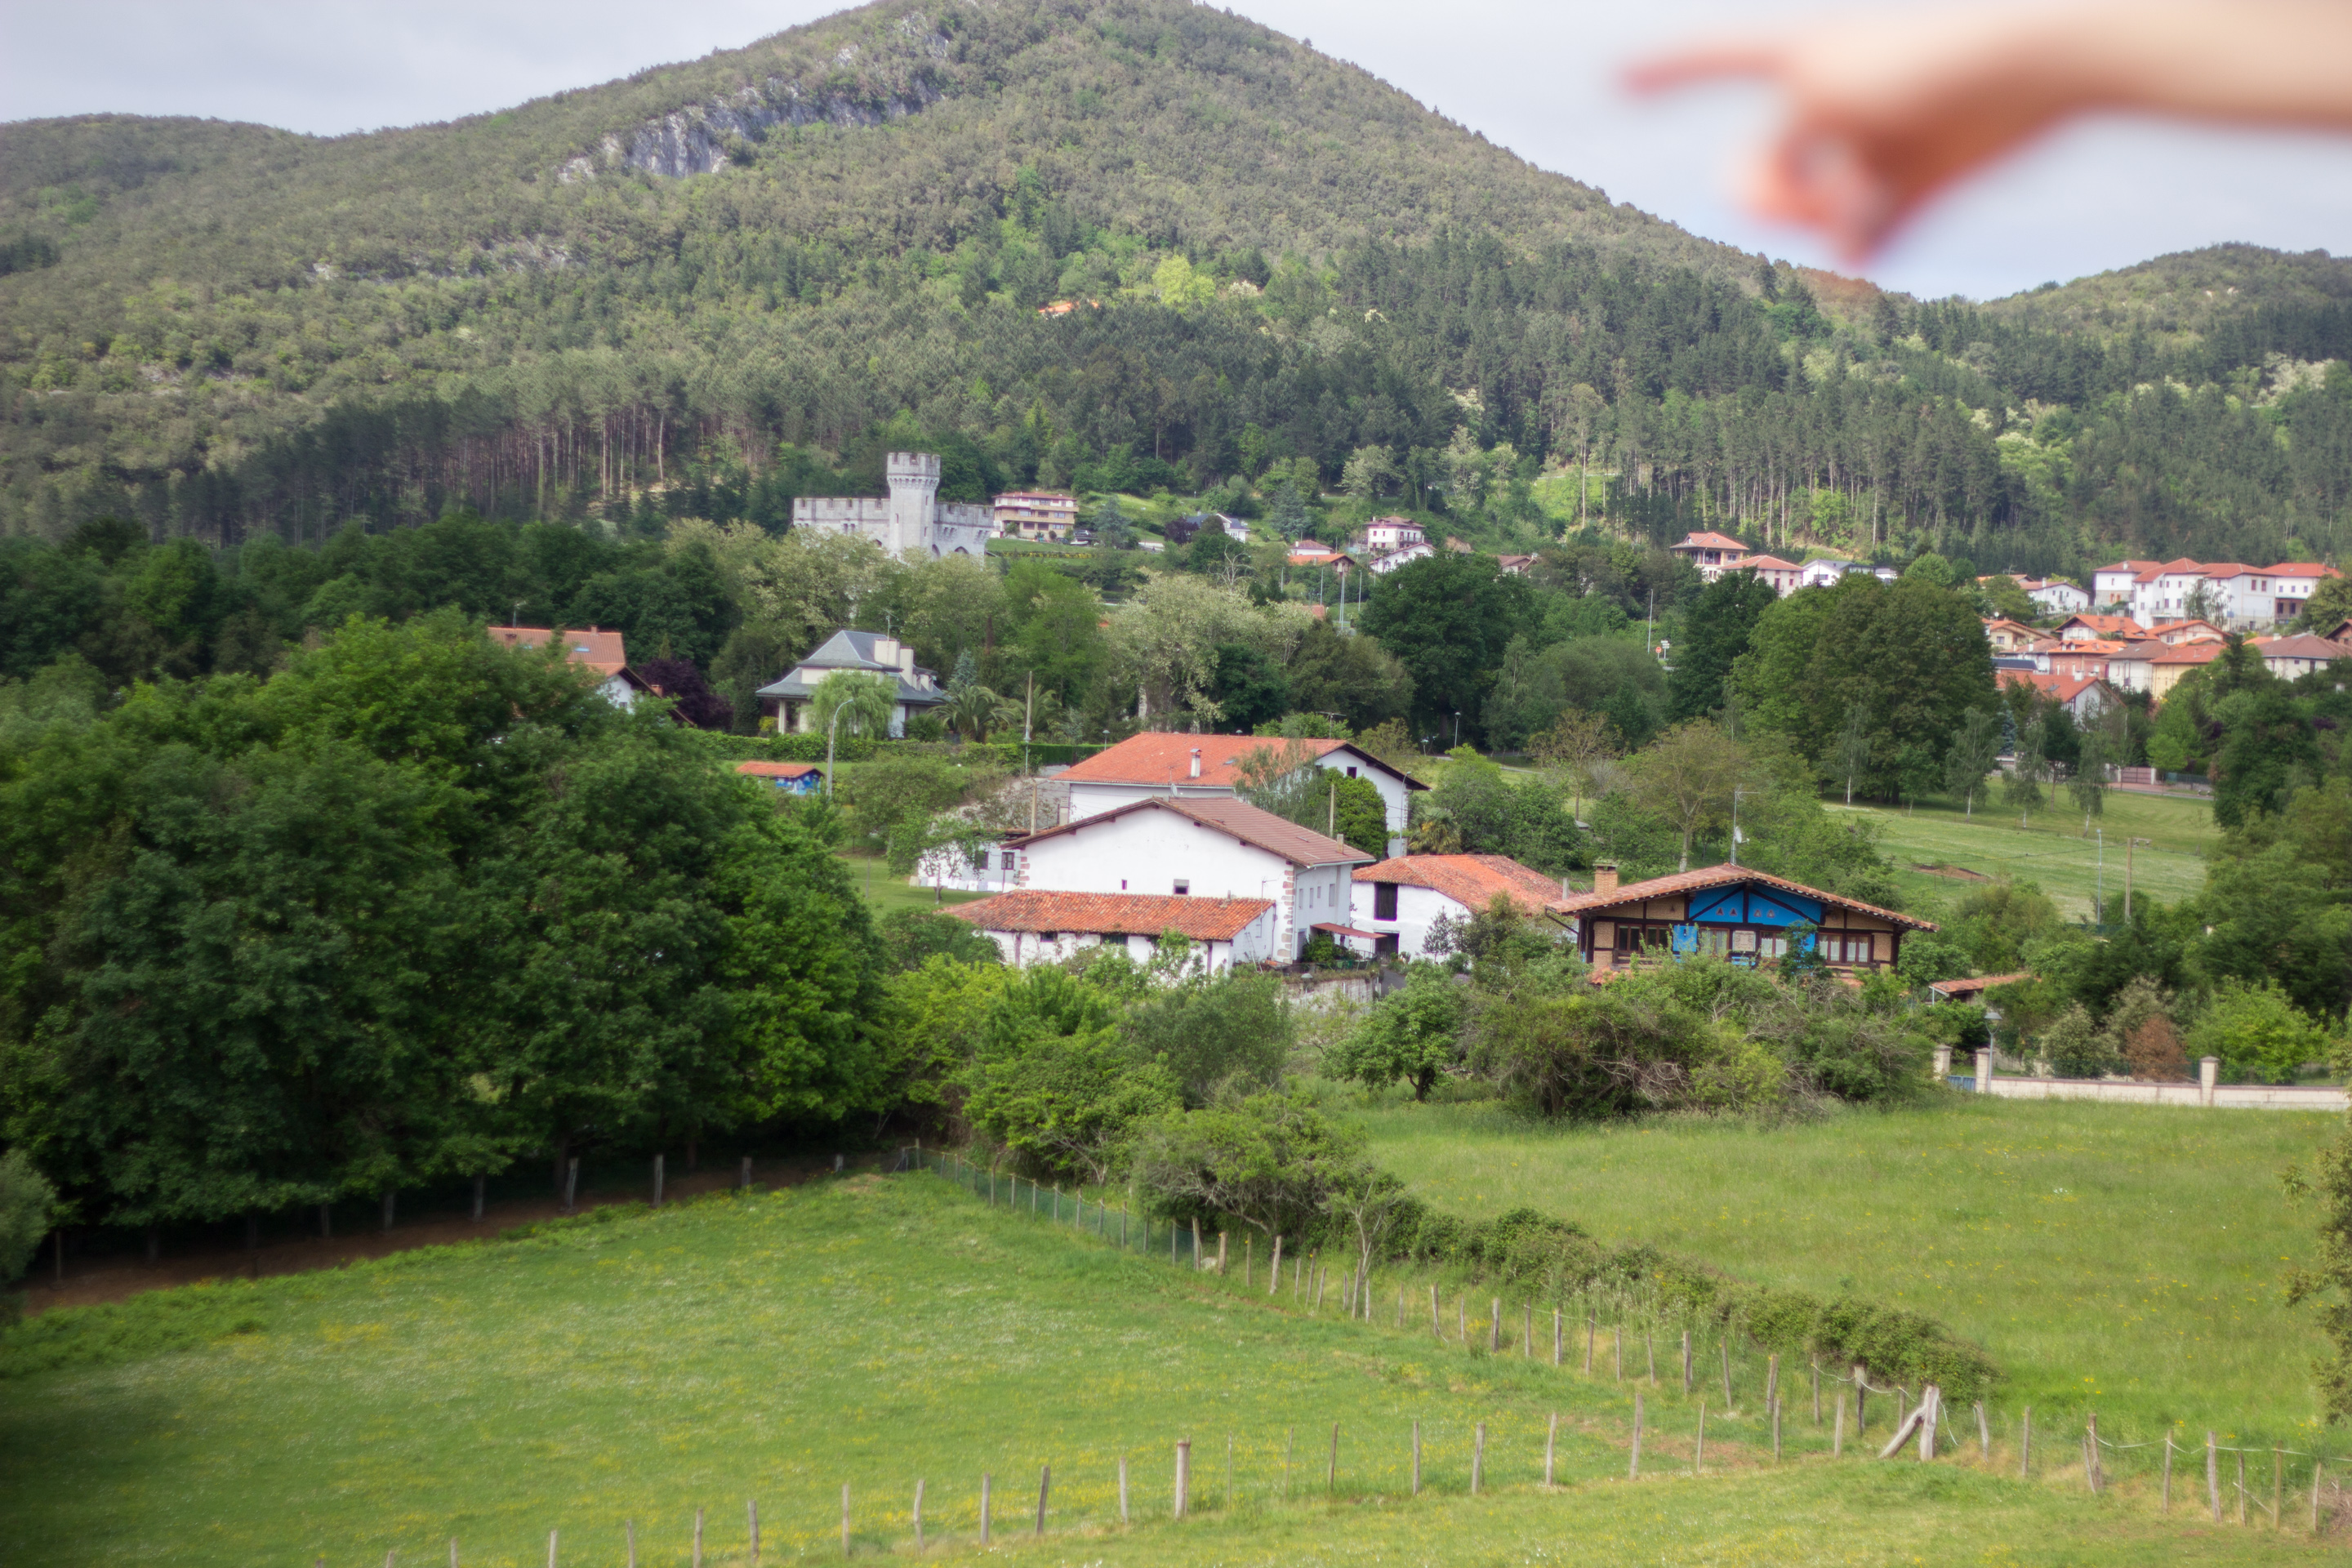 Explore the Basque Country in 20 Charming Pictures